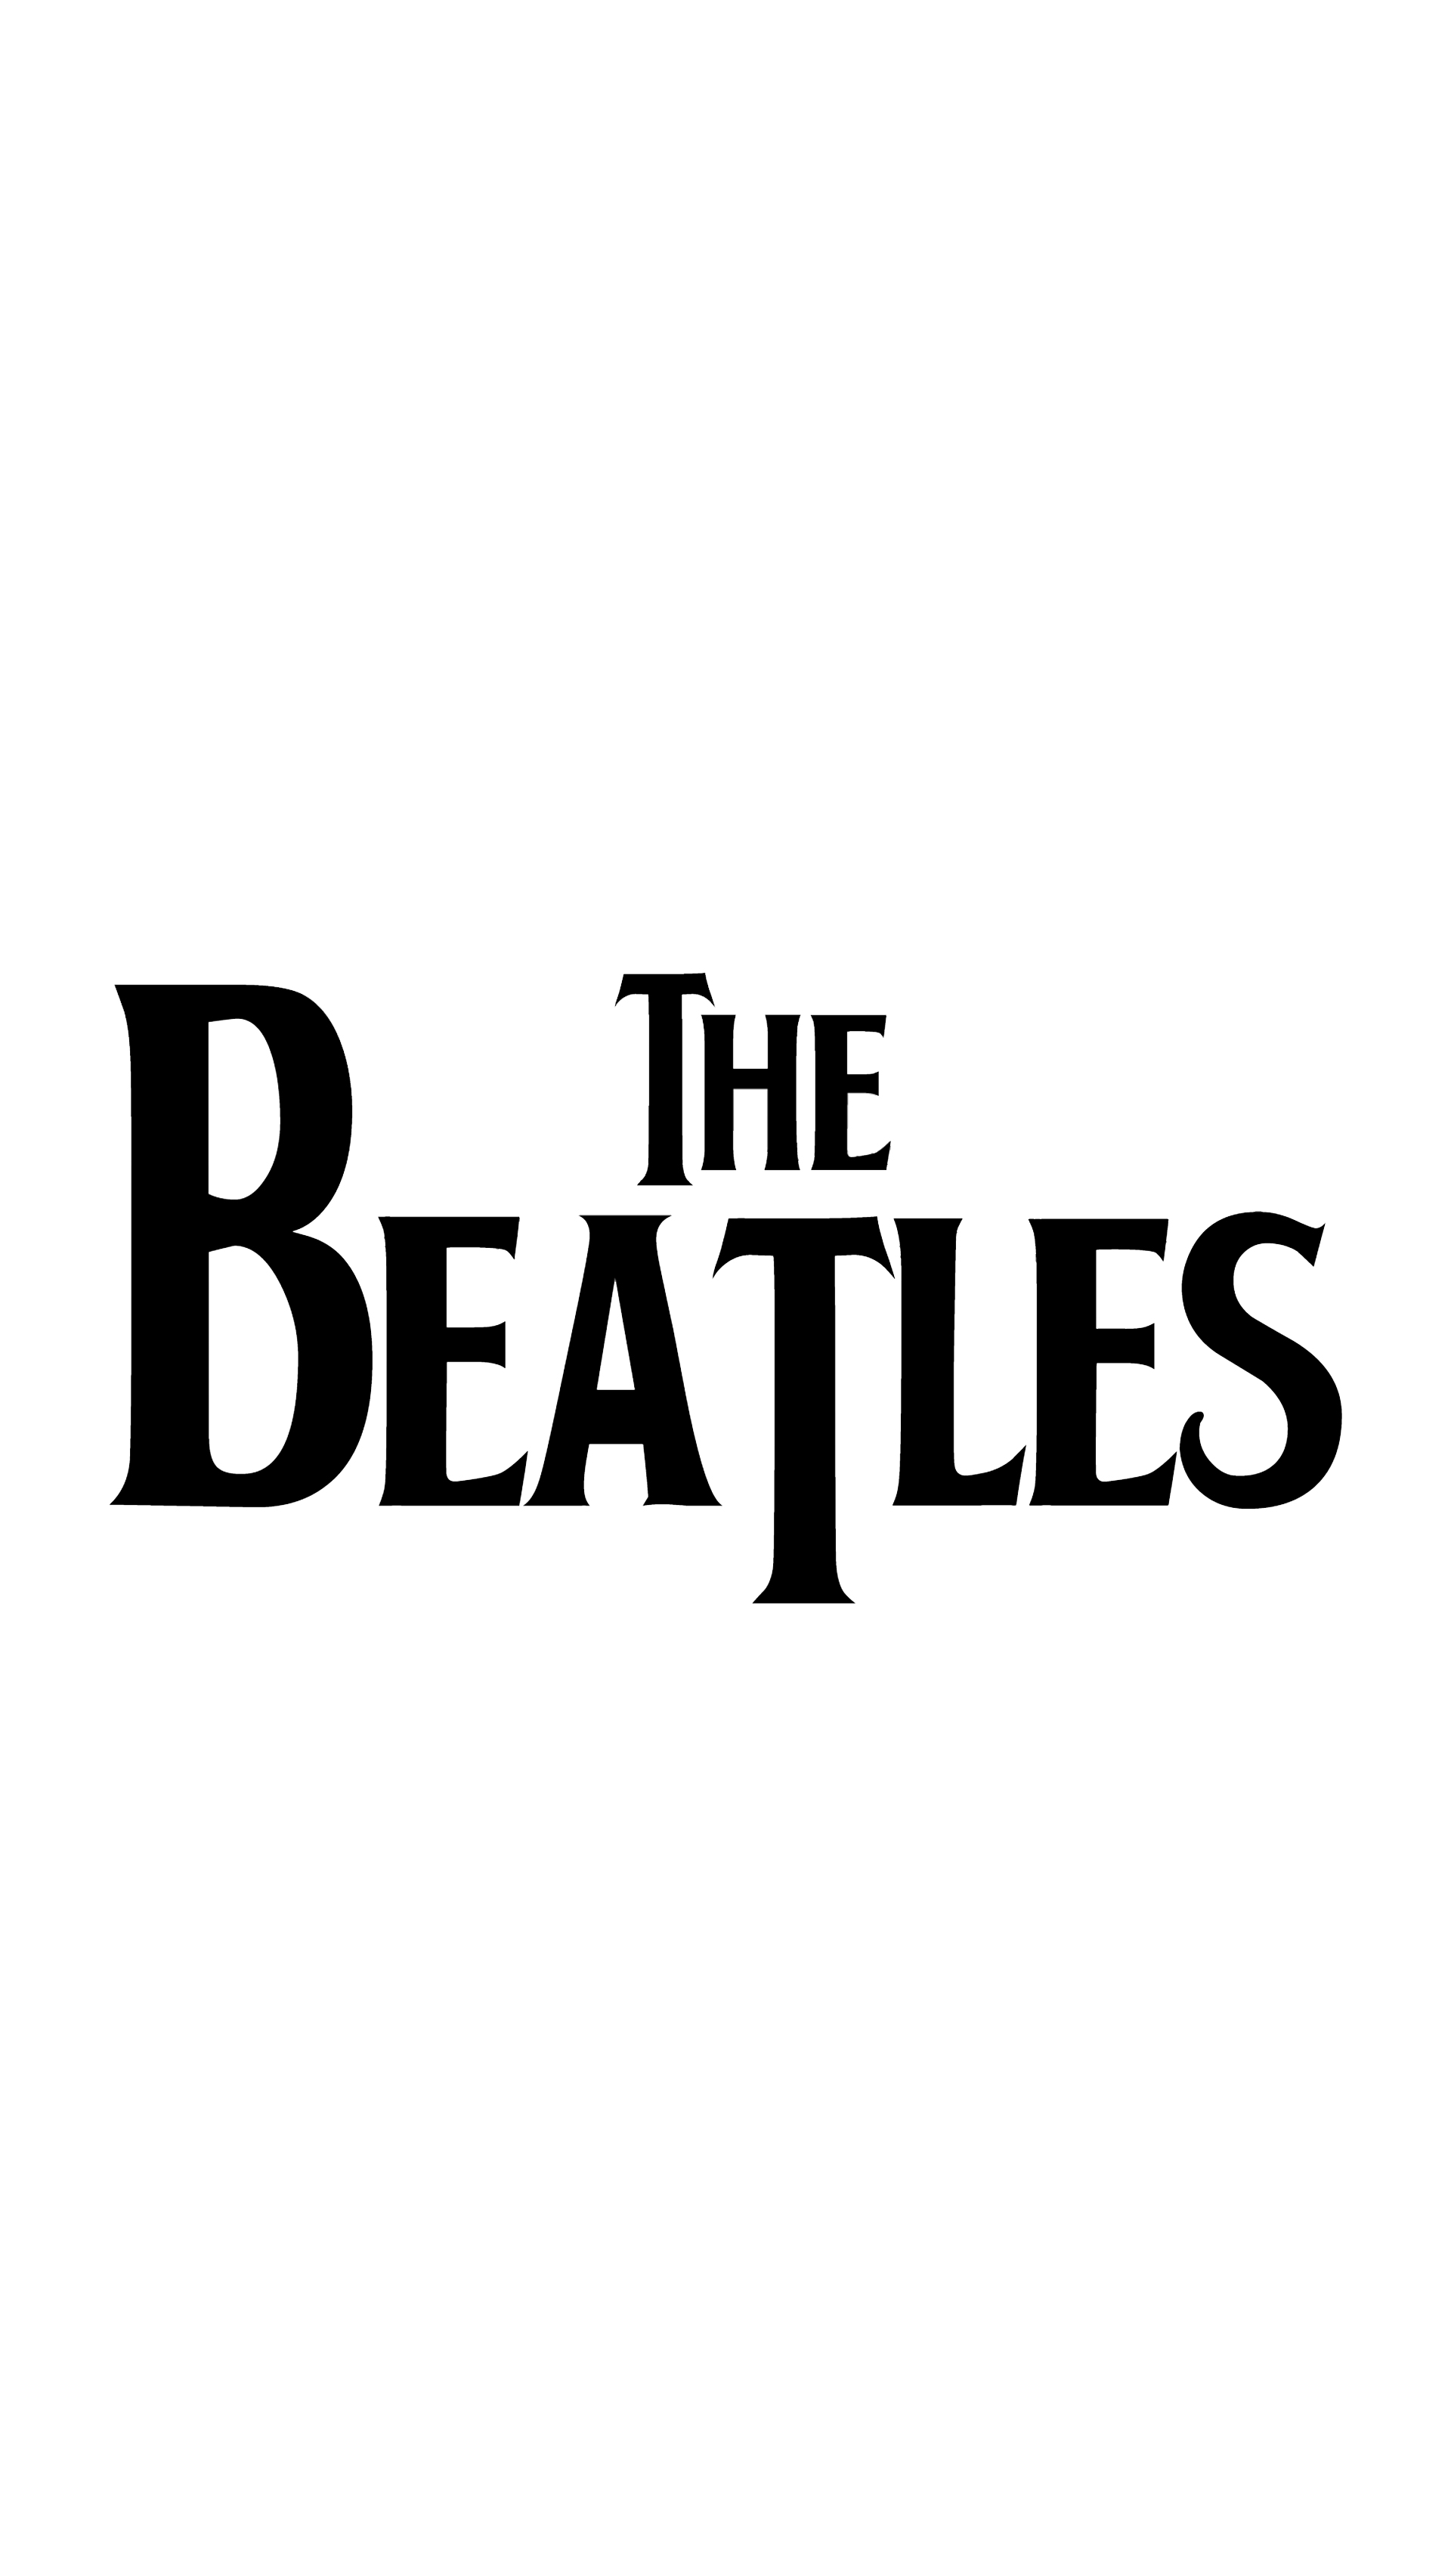 The Beatles iPhone Wallpapers (23 Wallpapers) – Adorable ...  |Beatles Iphone Wallpaper